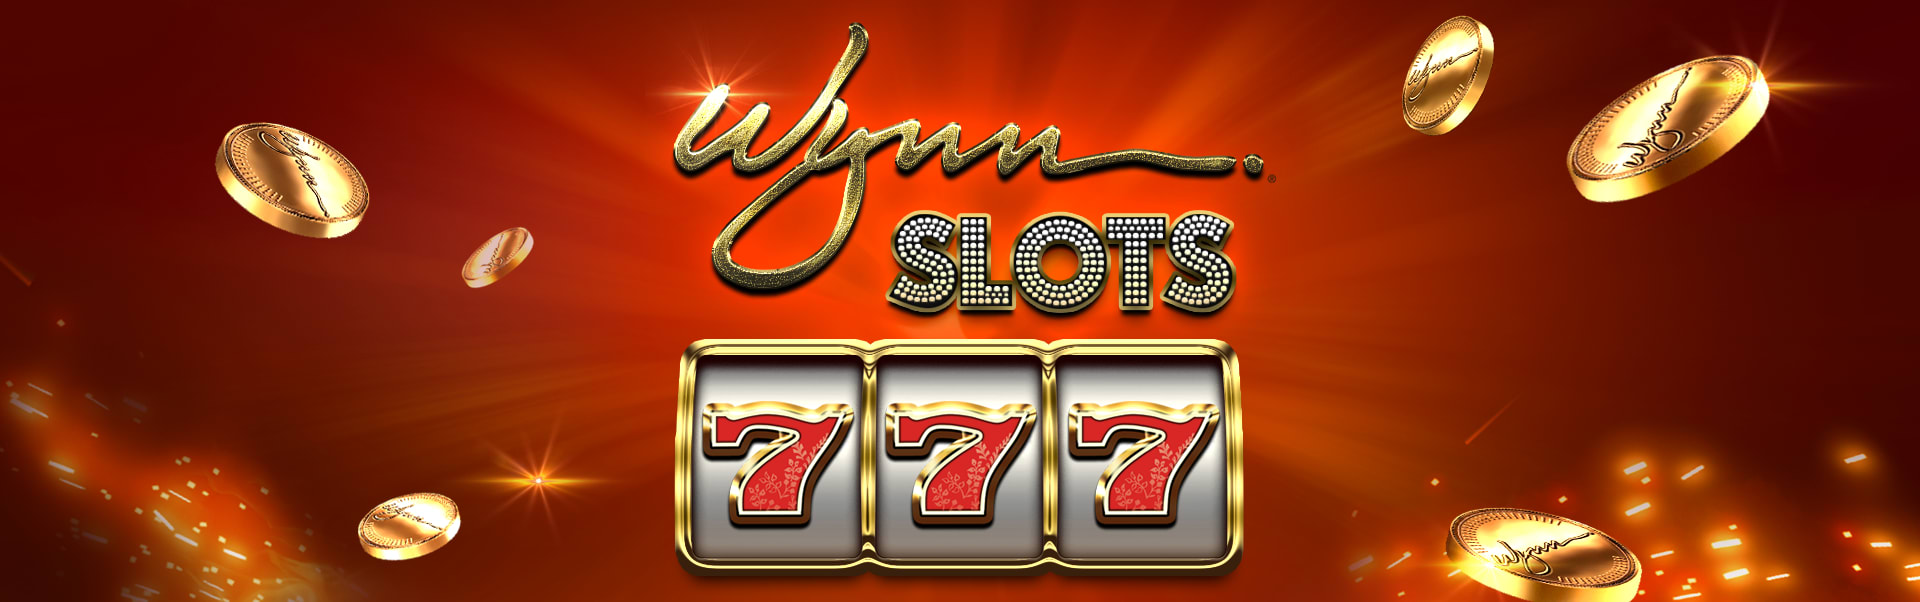 Wynn Slots Mobile App | Las Vegas and Encore Resort